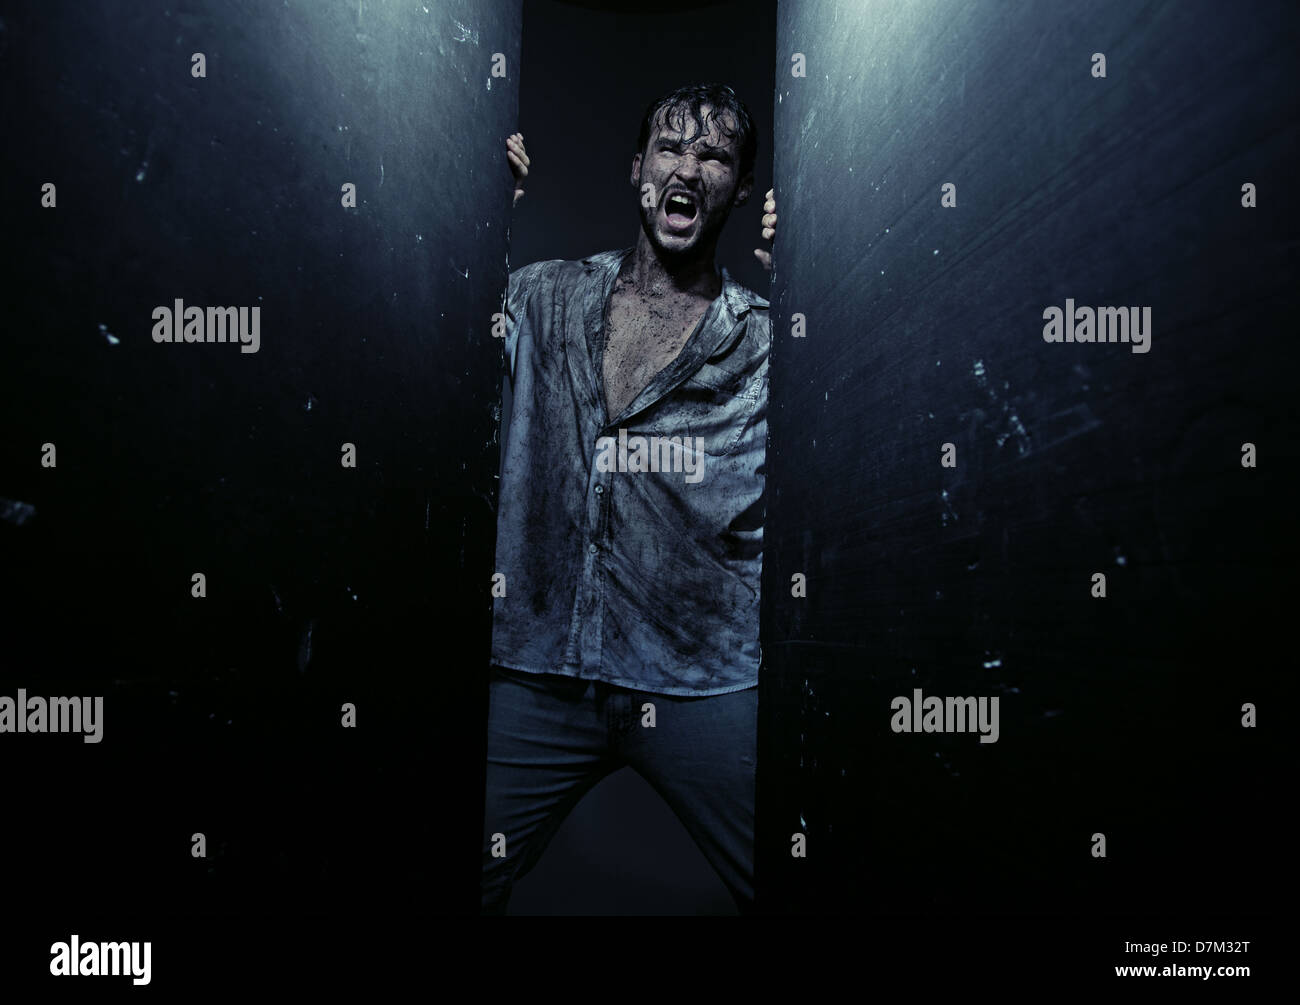 Dirty exhausted guy during adventure Stock Photo